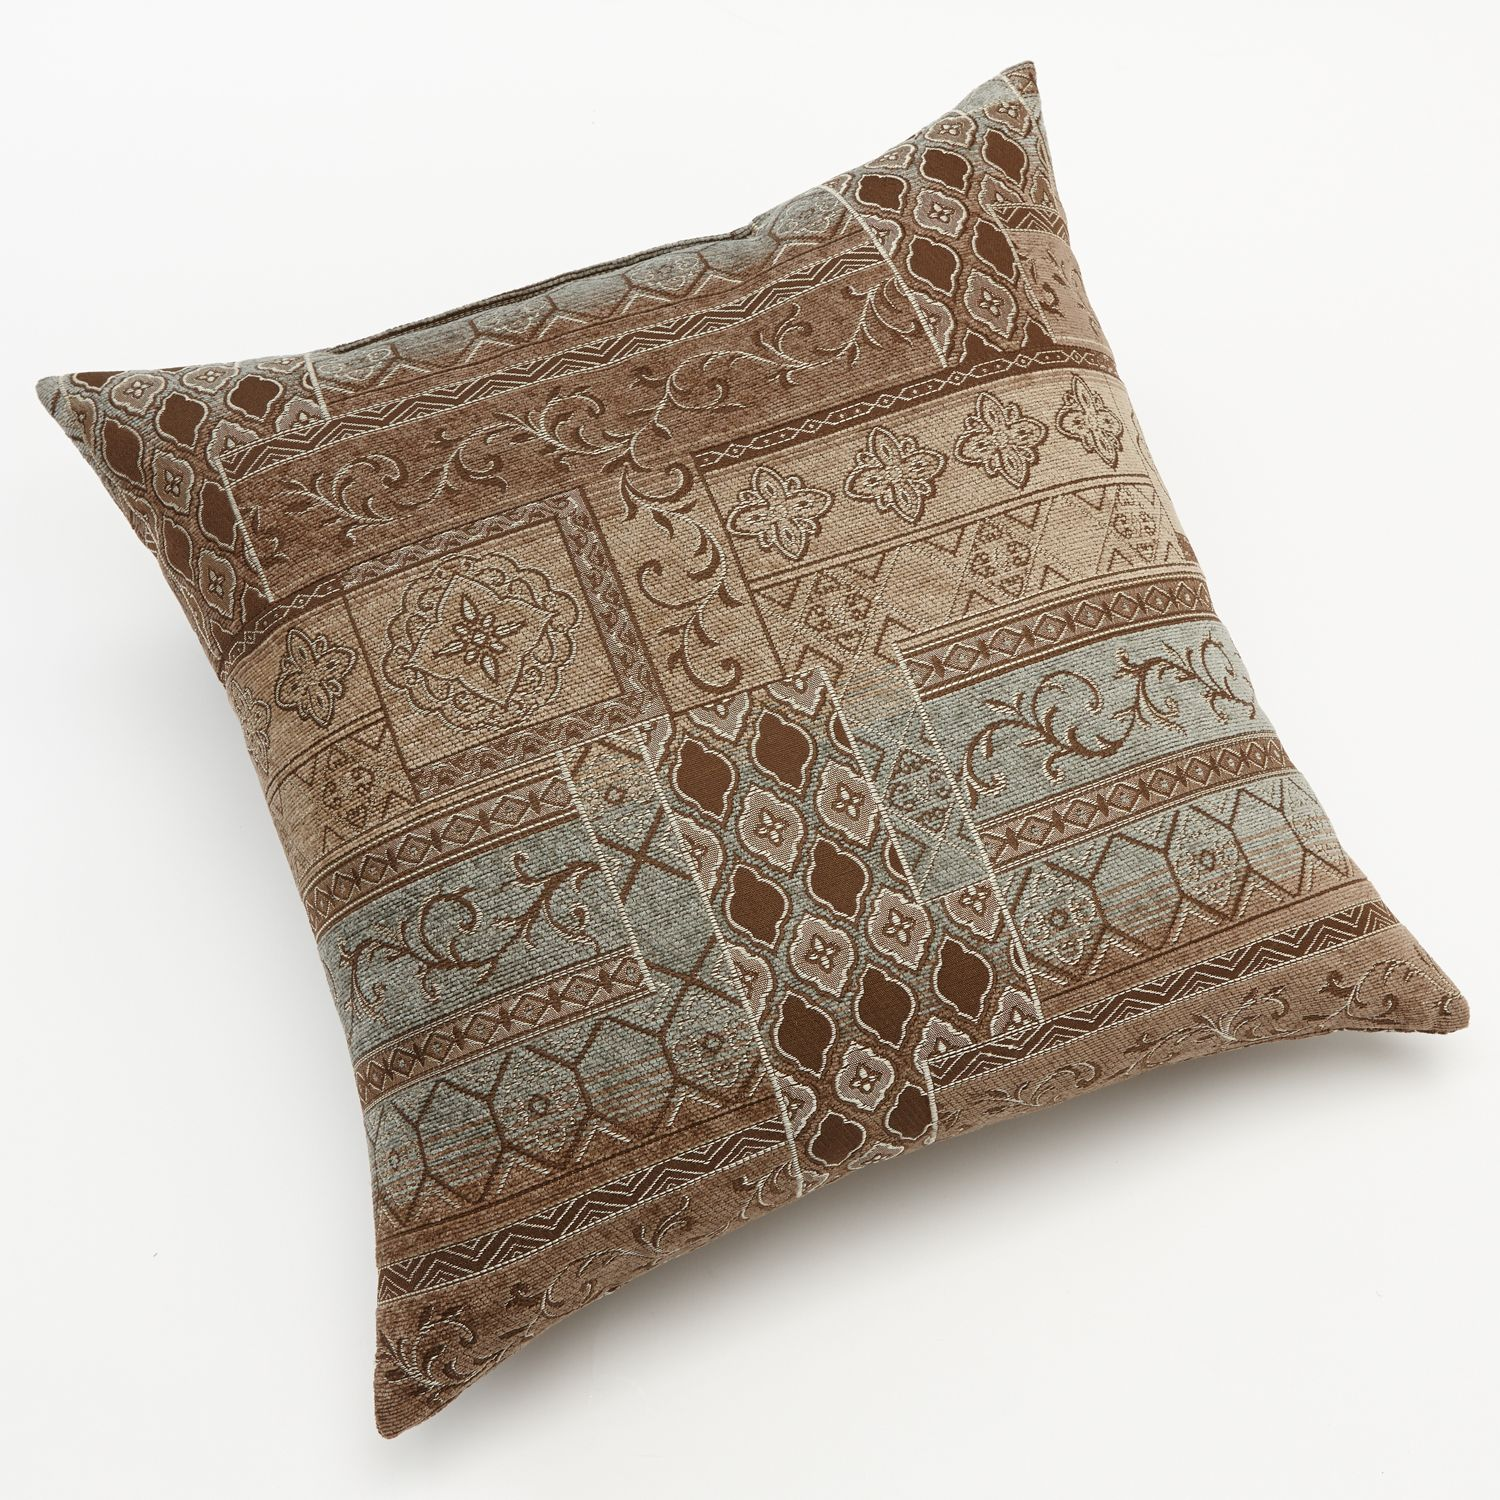 Decorative Pillows At Kohls : Capelin Decorative Pillow - $19.99